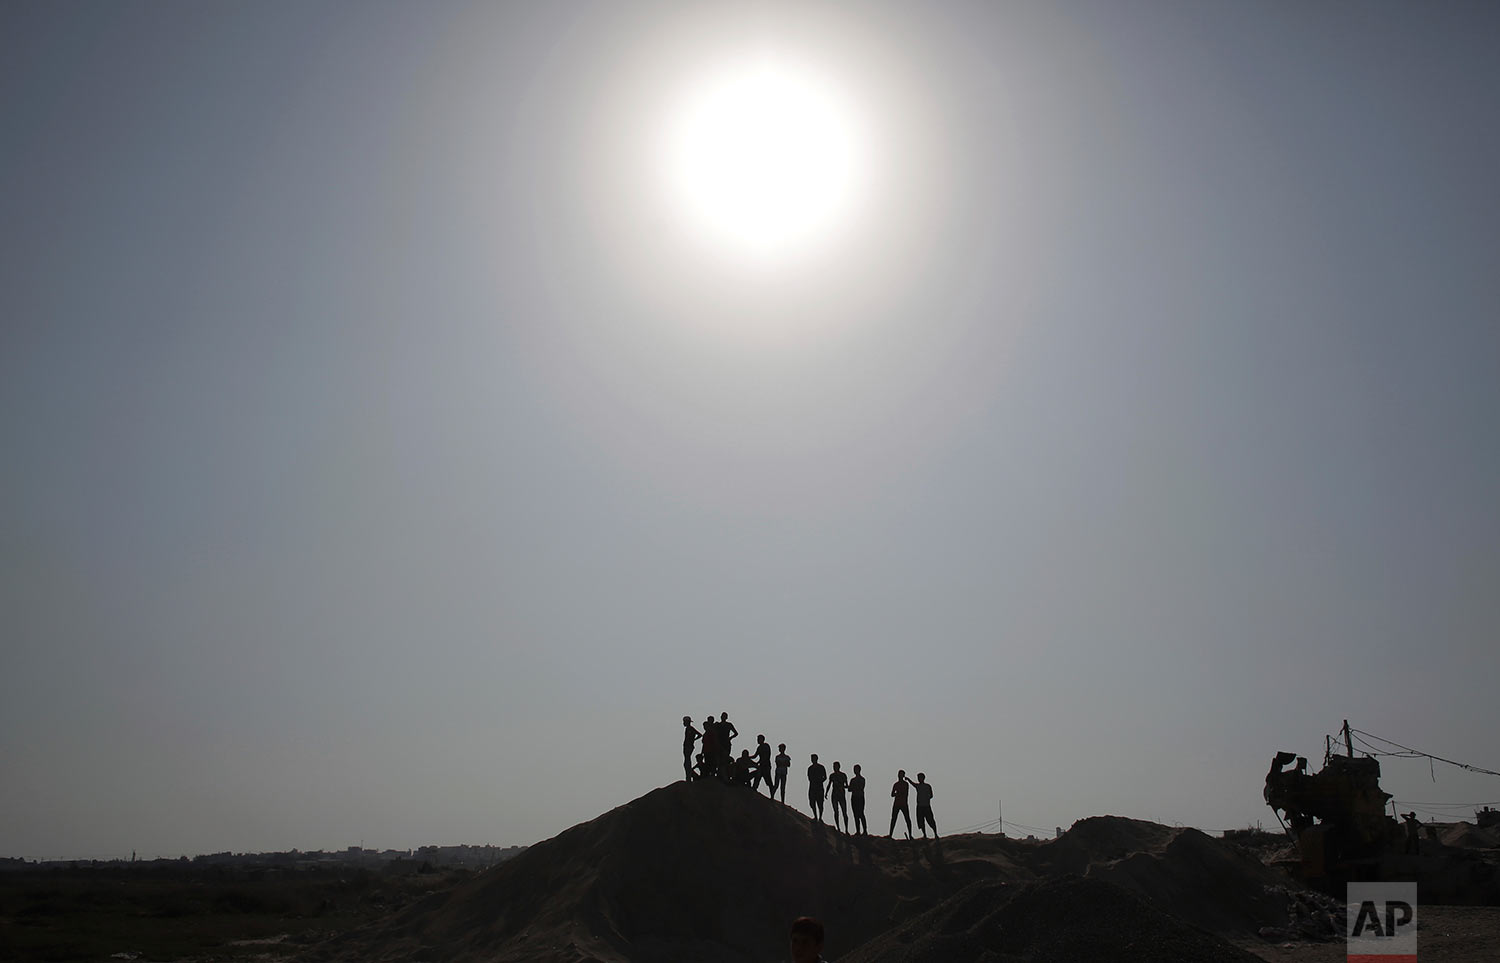 Palestinian protesters stand on top of a sandy hill during clashes with Israeli soldiers on the Israeli border with Gaza, Friday, July 21, 2017. (AP Photo/ Khalil Hamra)